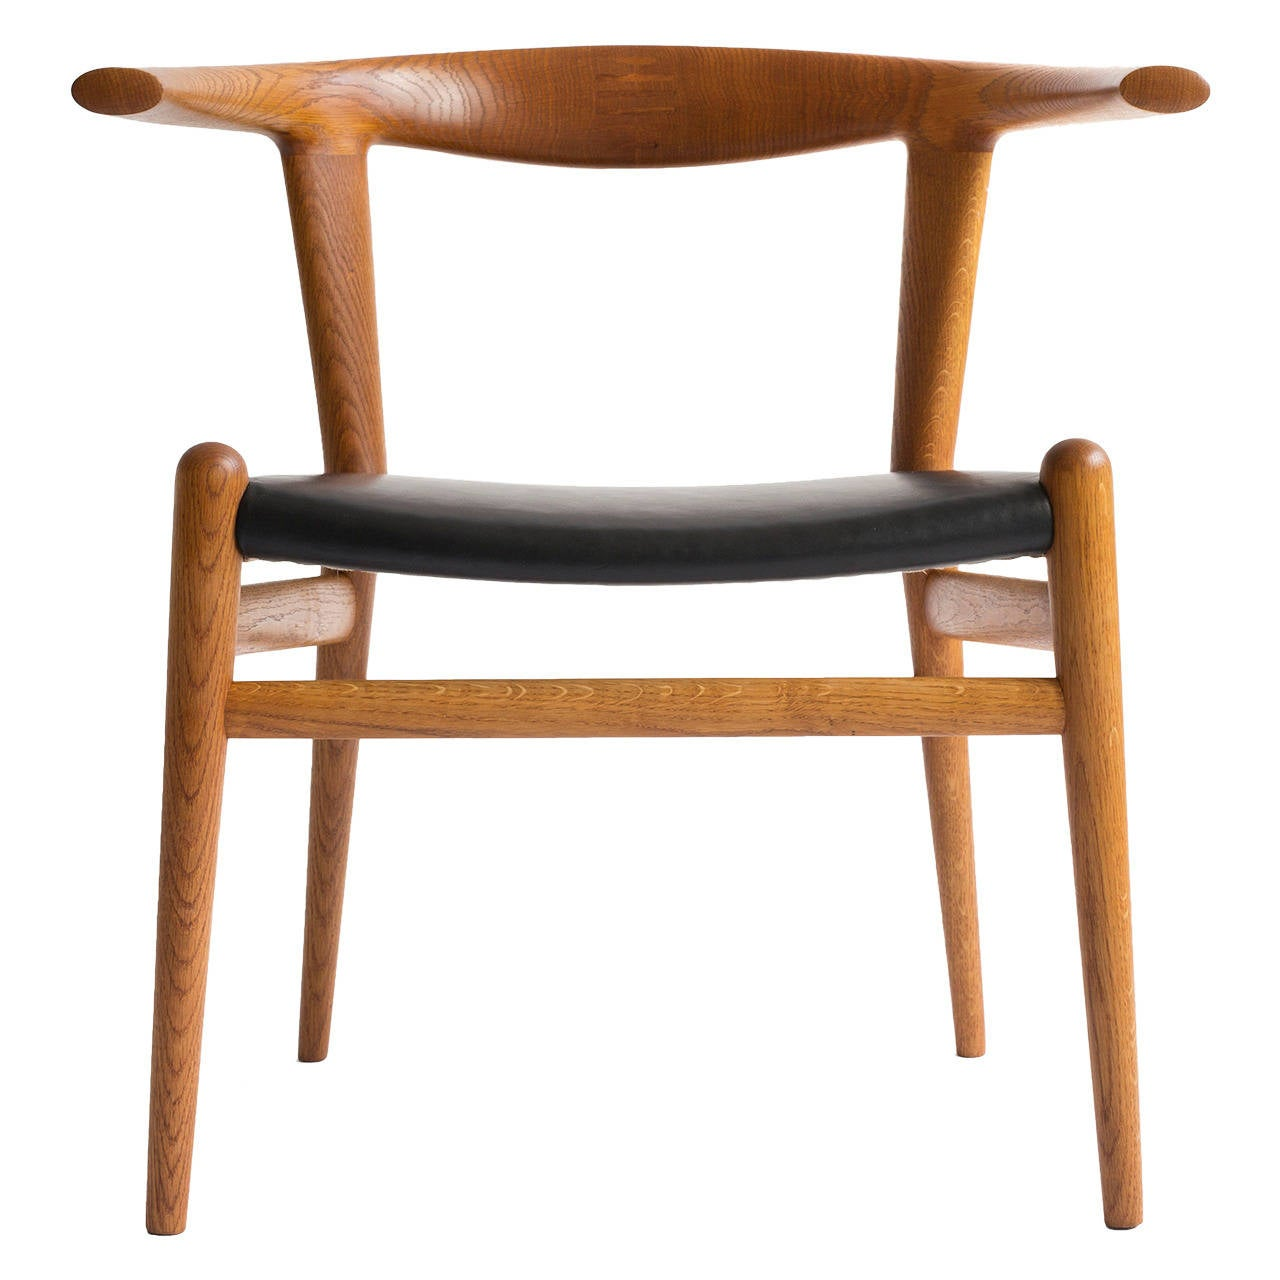 hans j wegner 39 bull chair 39 for sale at 1stdibs. Black Bedroom Furniture Sets. Home Design Ideas